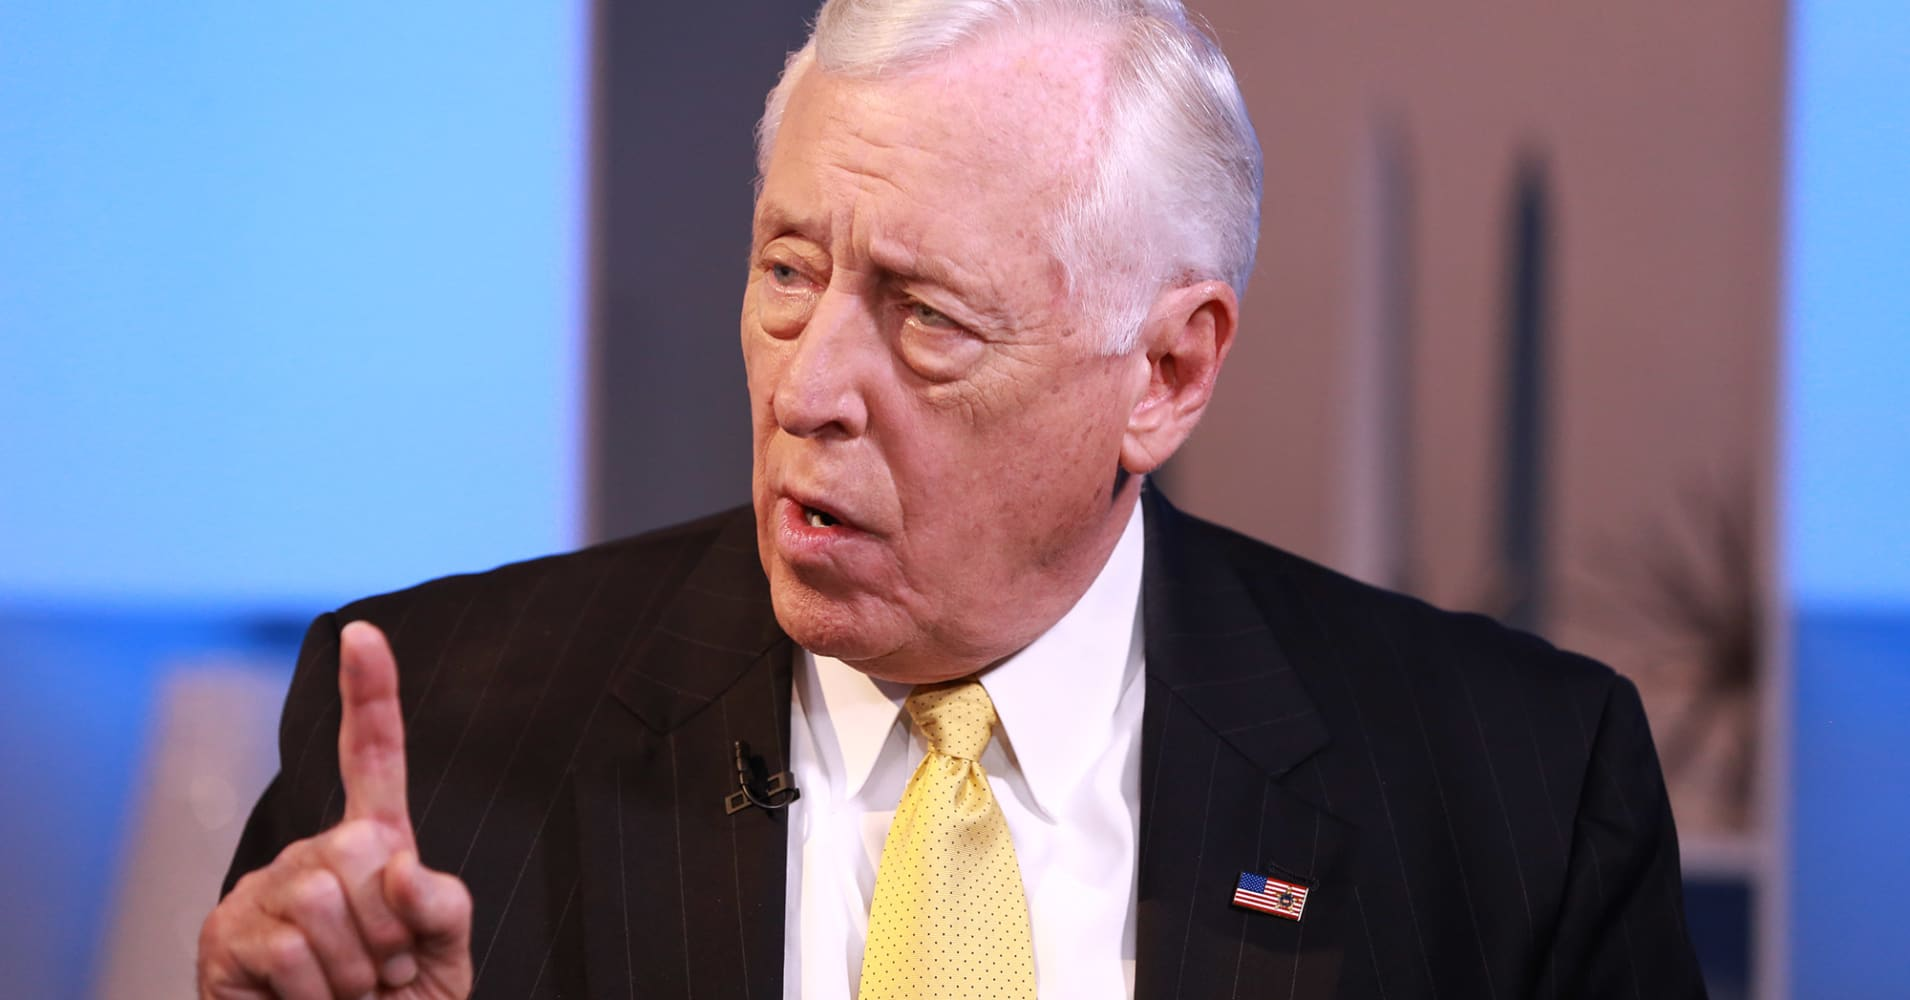 Americans 'ought to be disgusted' after Scaramucci's vulgar tirade, says House Dem Whip Hoyer